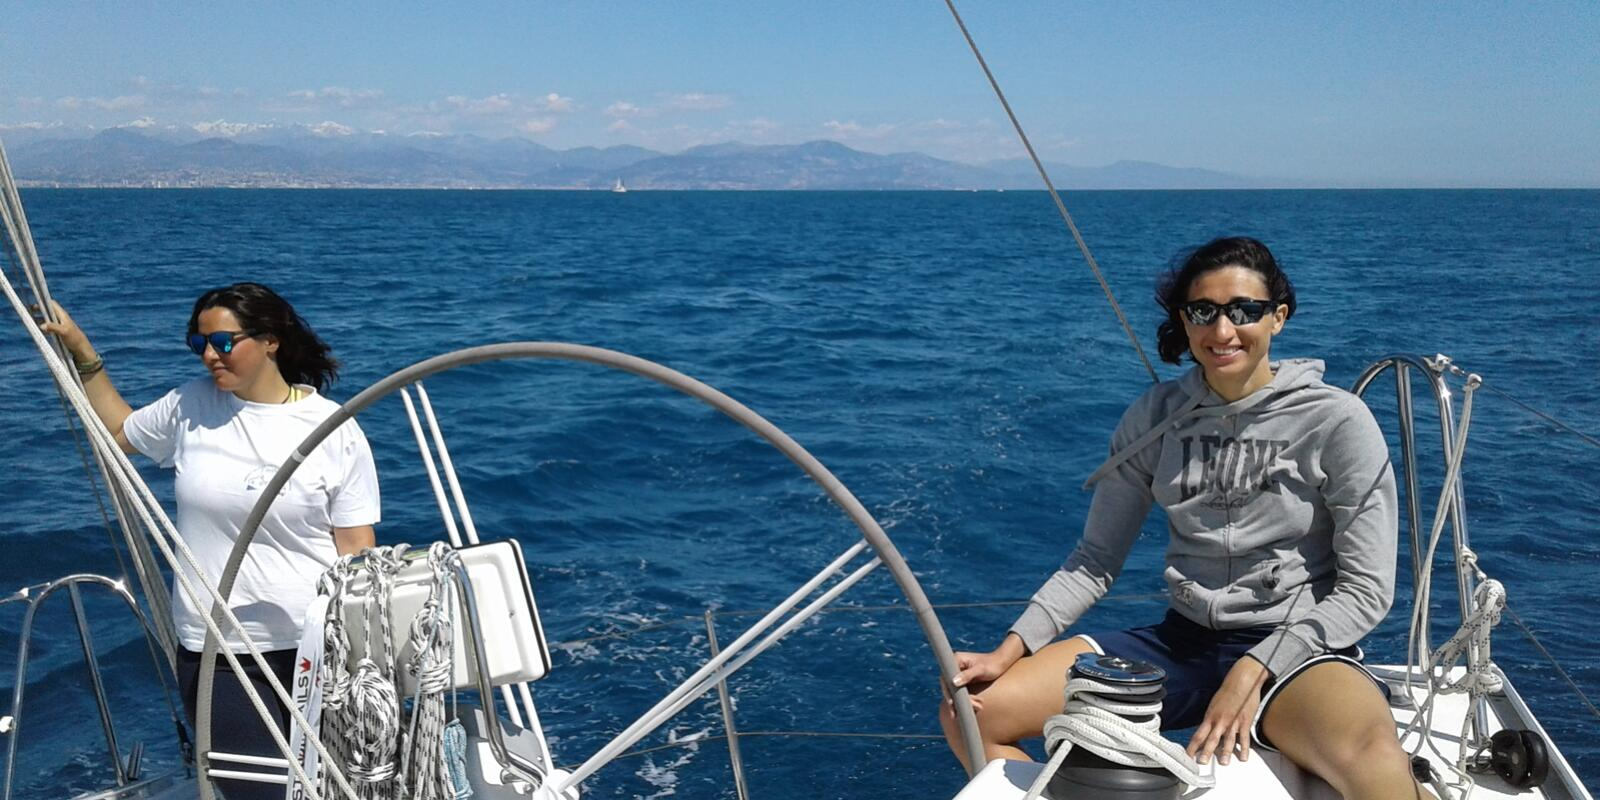 Basic sailing course in Sanremo on cabin cruisers - the right mix of teaching and relaxation for a real holiday